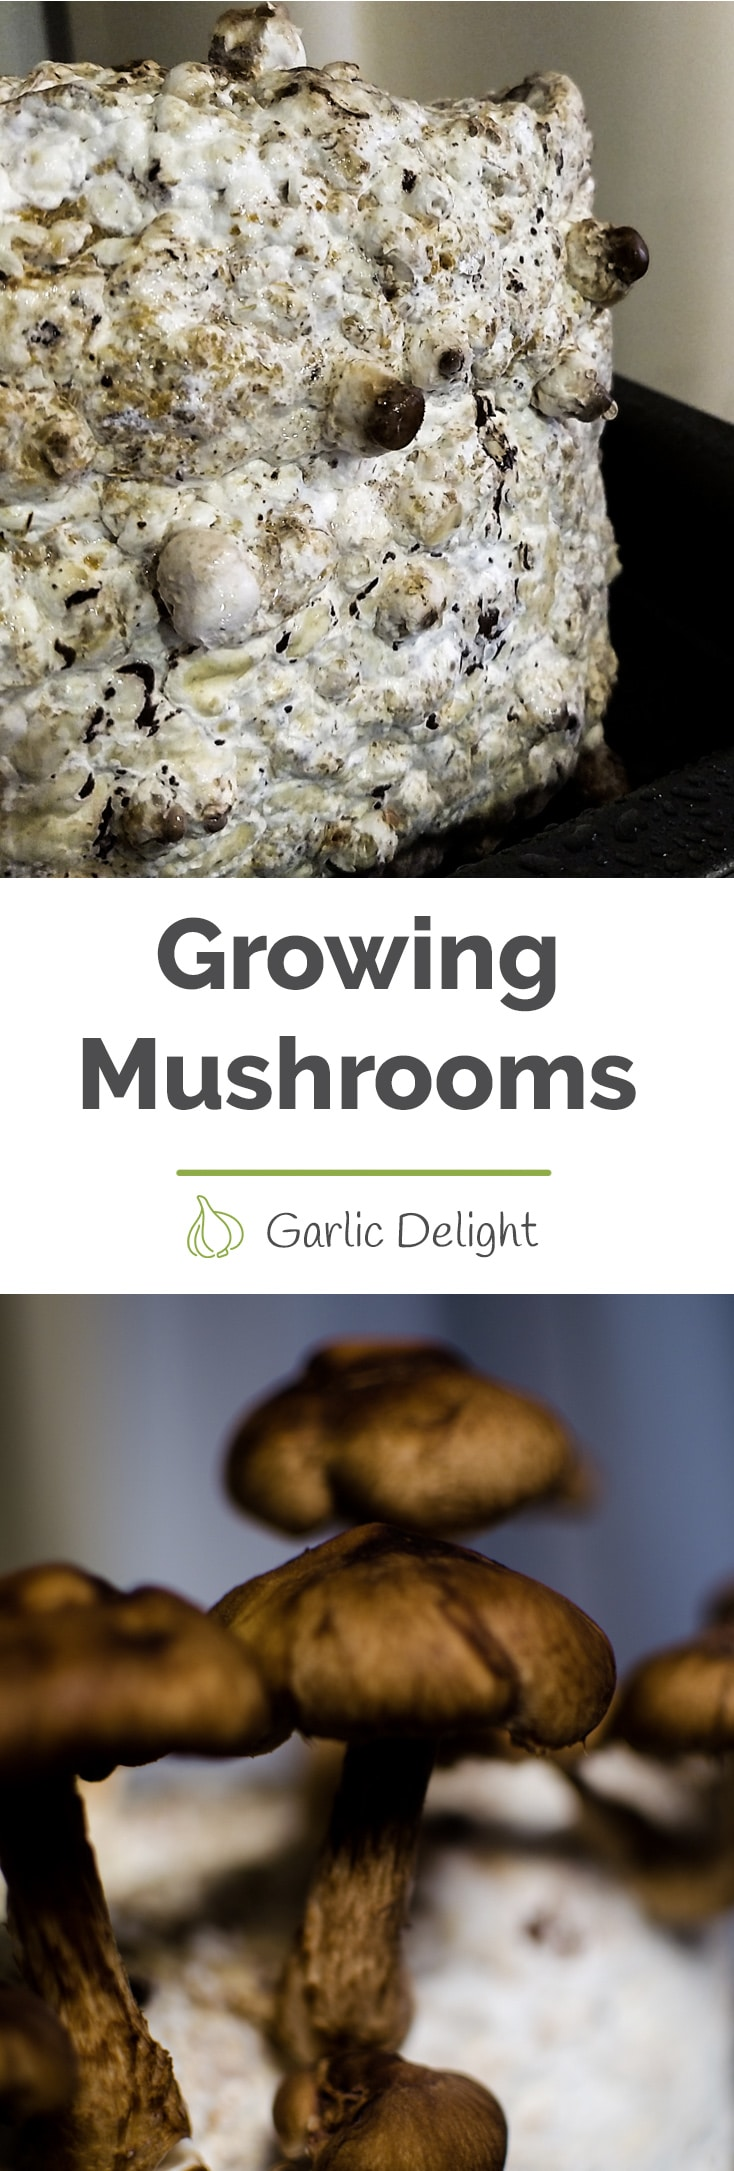 Growing our Shiitake Mushrooms -- An ode to our creepy mushrooms. Learn how surprising and weird it has been to grow mushrooms, care for them, and then eat them. Stories from garlicdelight.com.